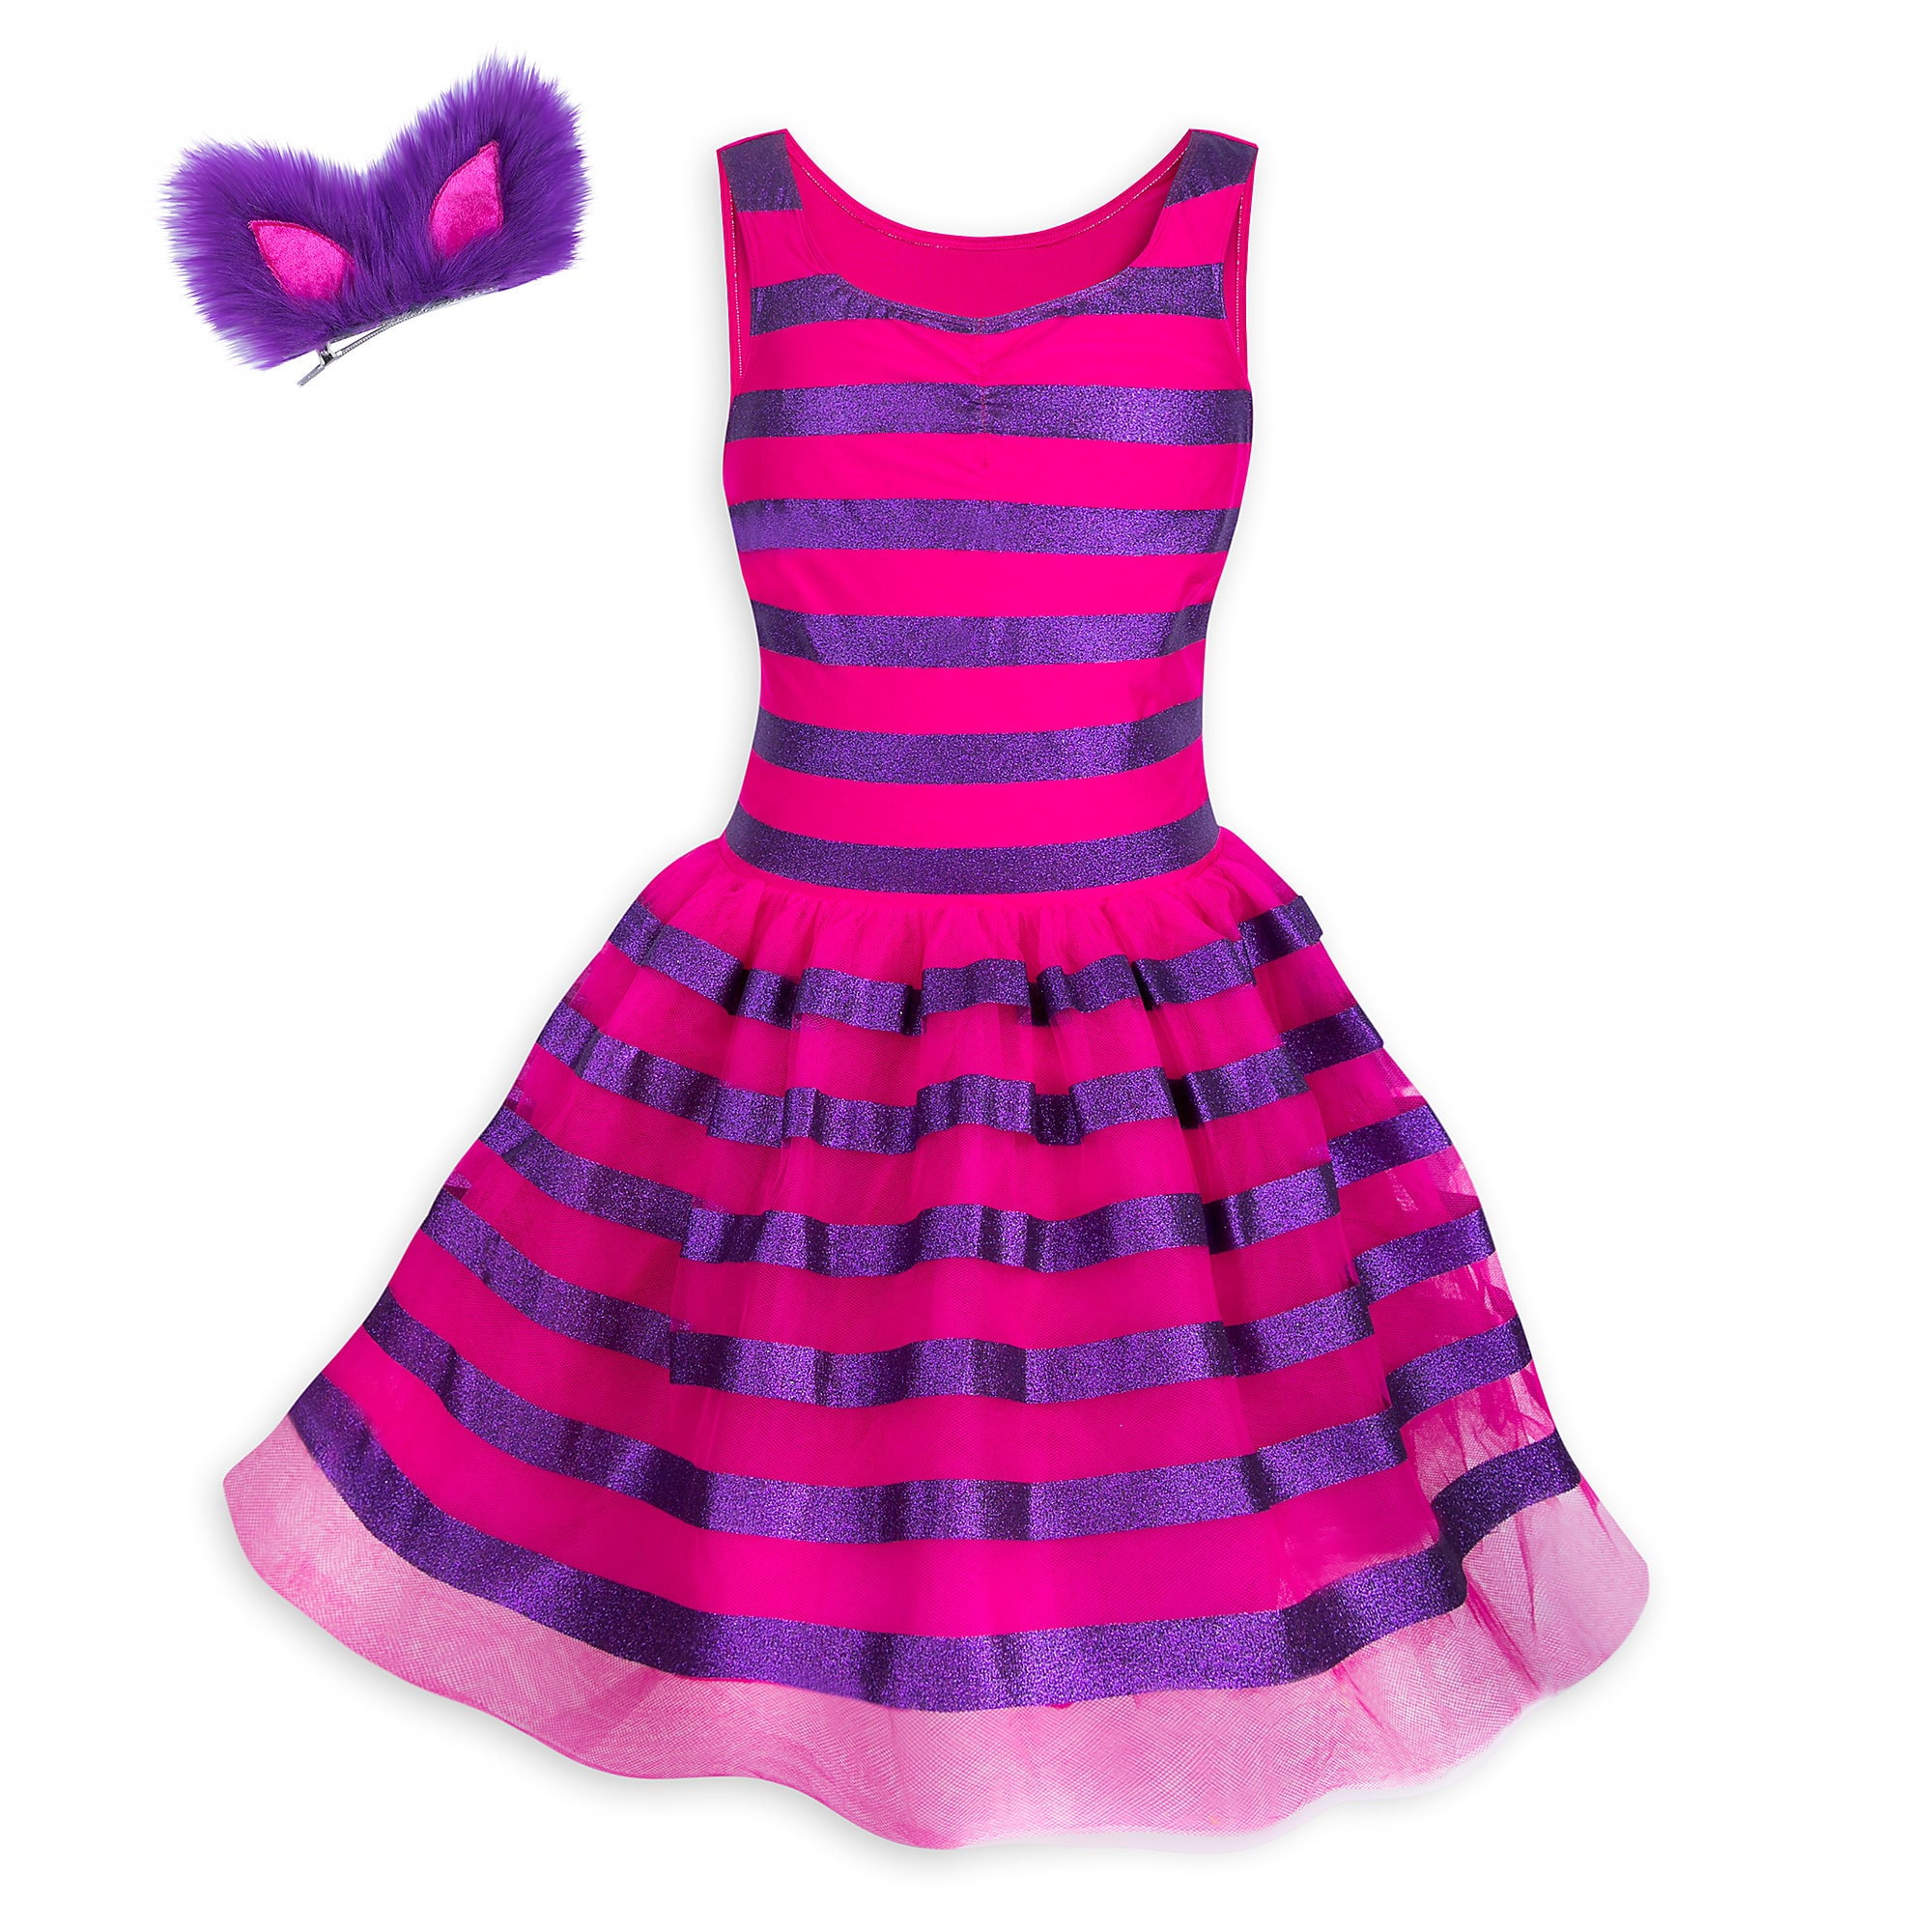 Cheshire Cat Costume Tutu with Headband for Women  sc 1 st  shopDisney : chechire cat costume  - Germanpascual.Com